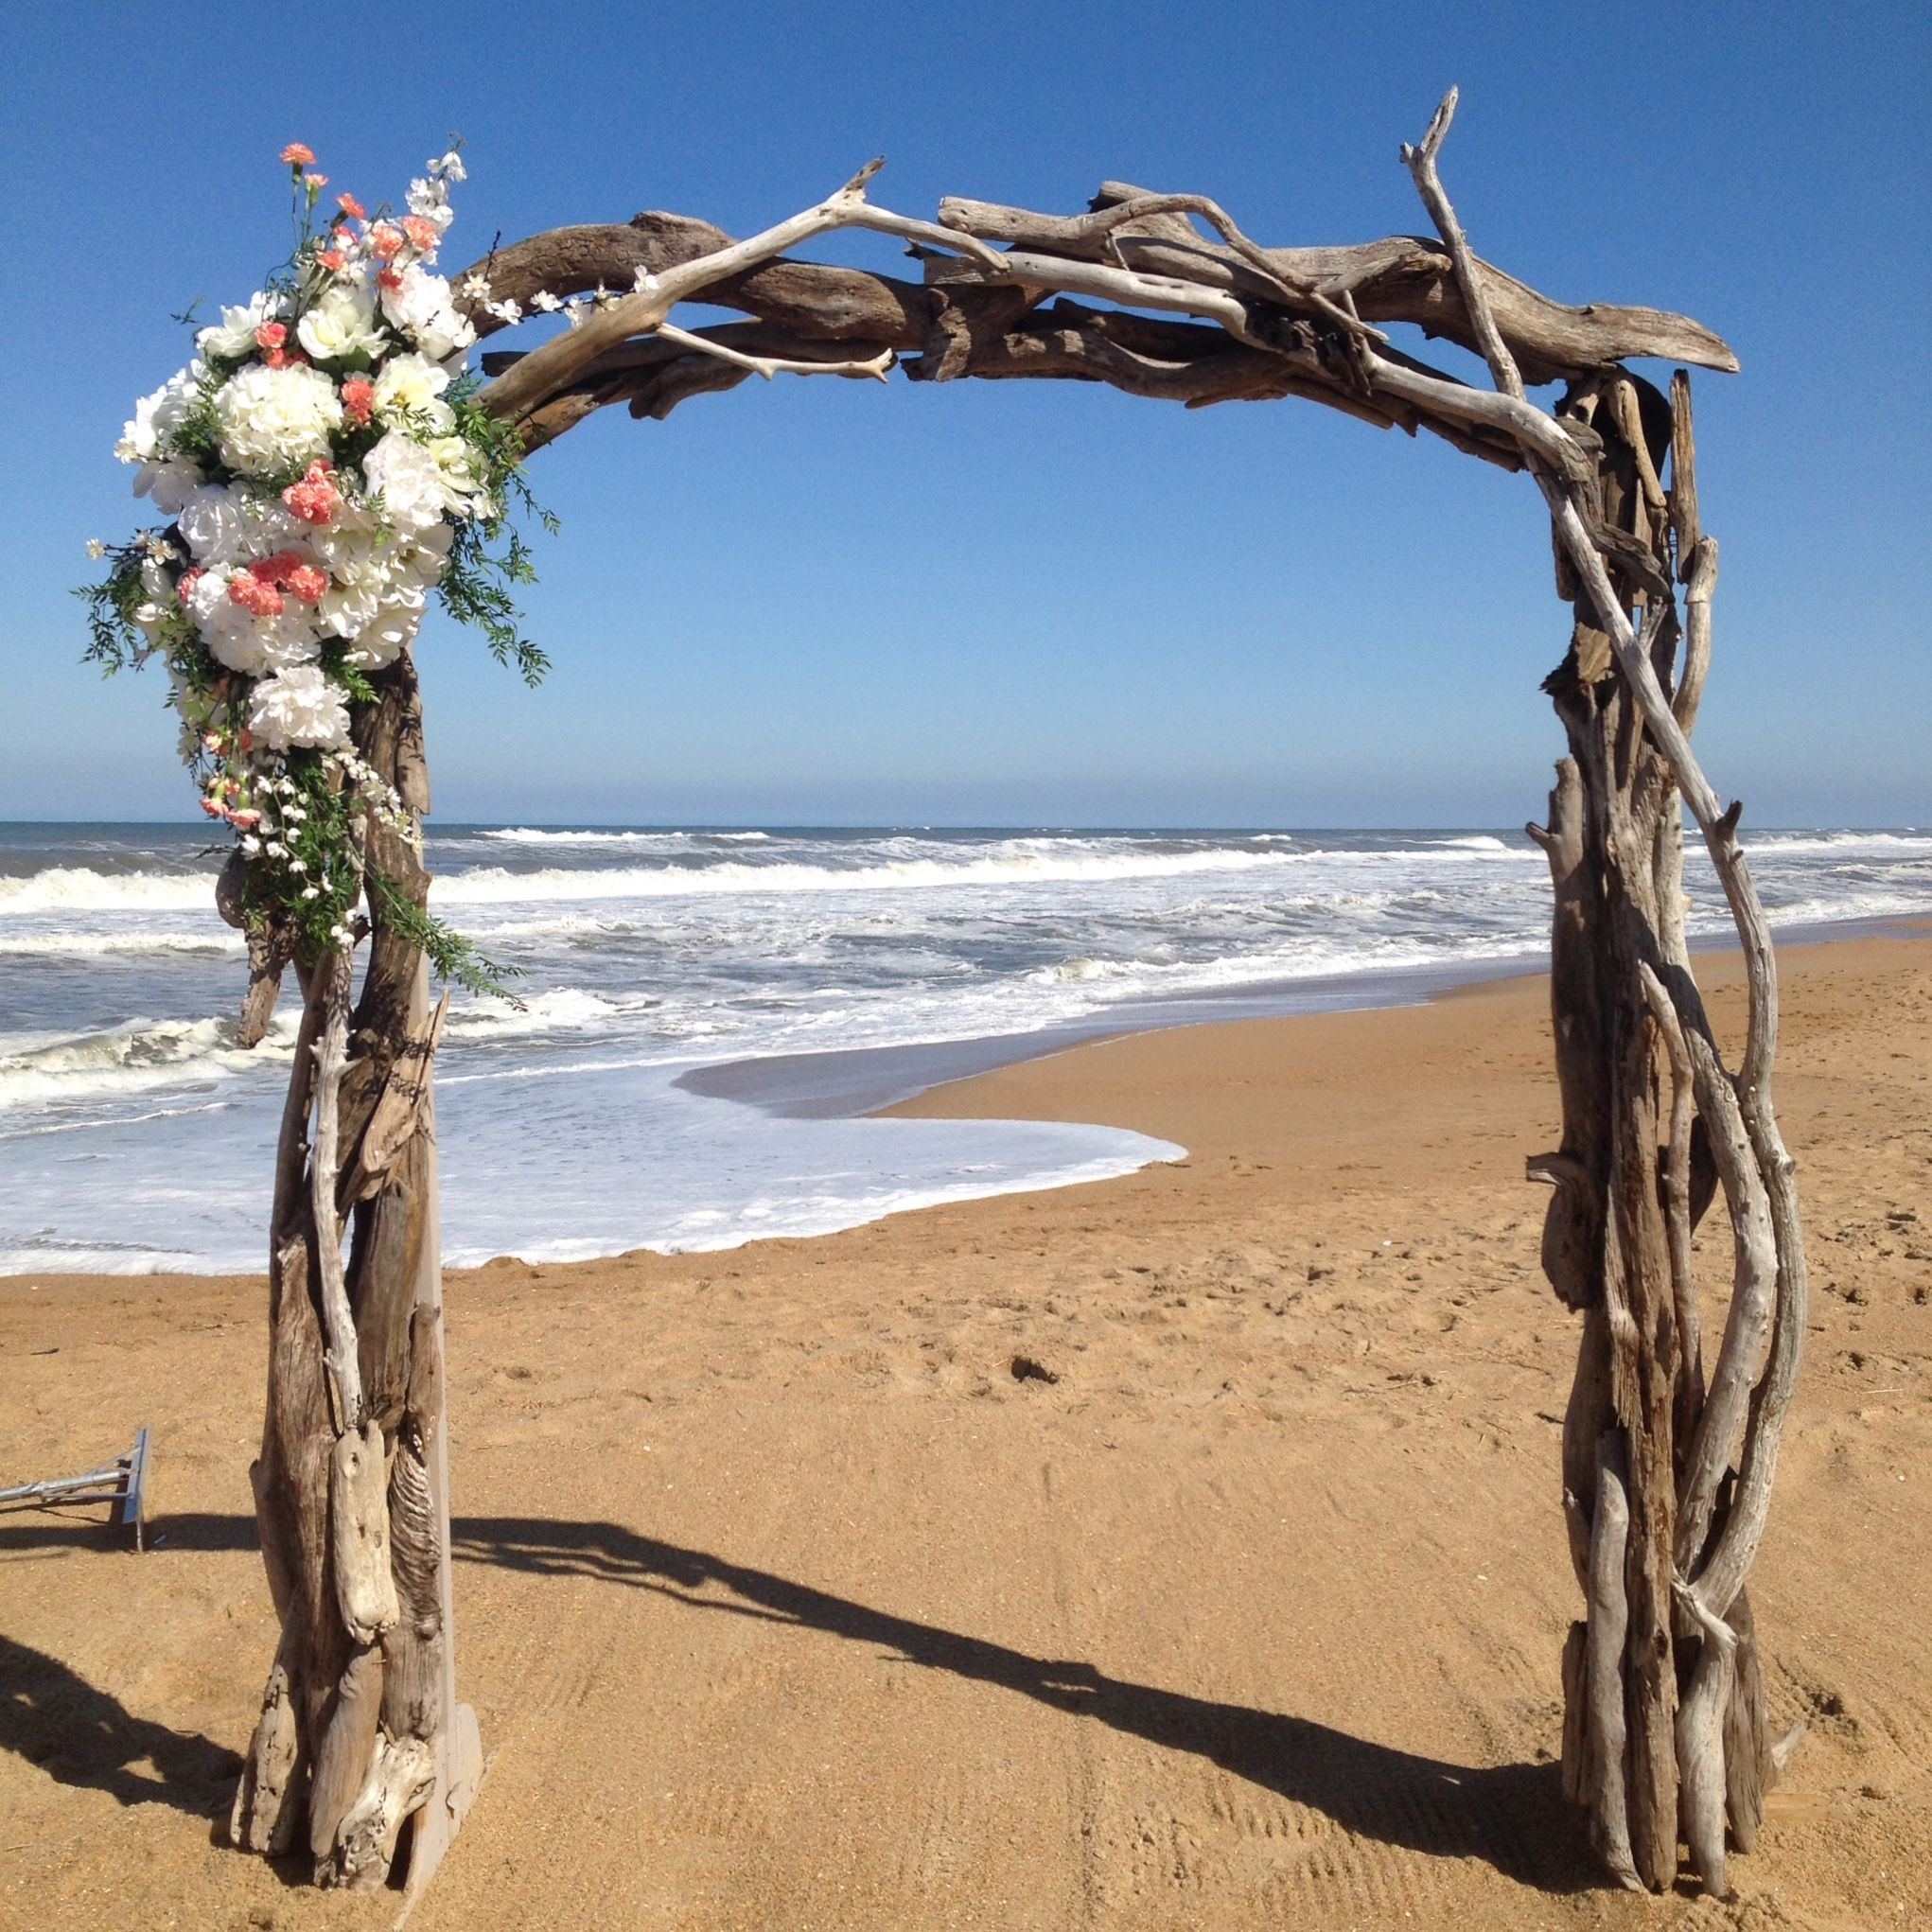 Diy Beach Wedding Arch: Large Driftwood Arch